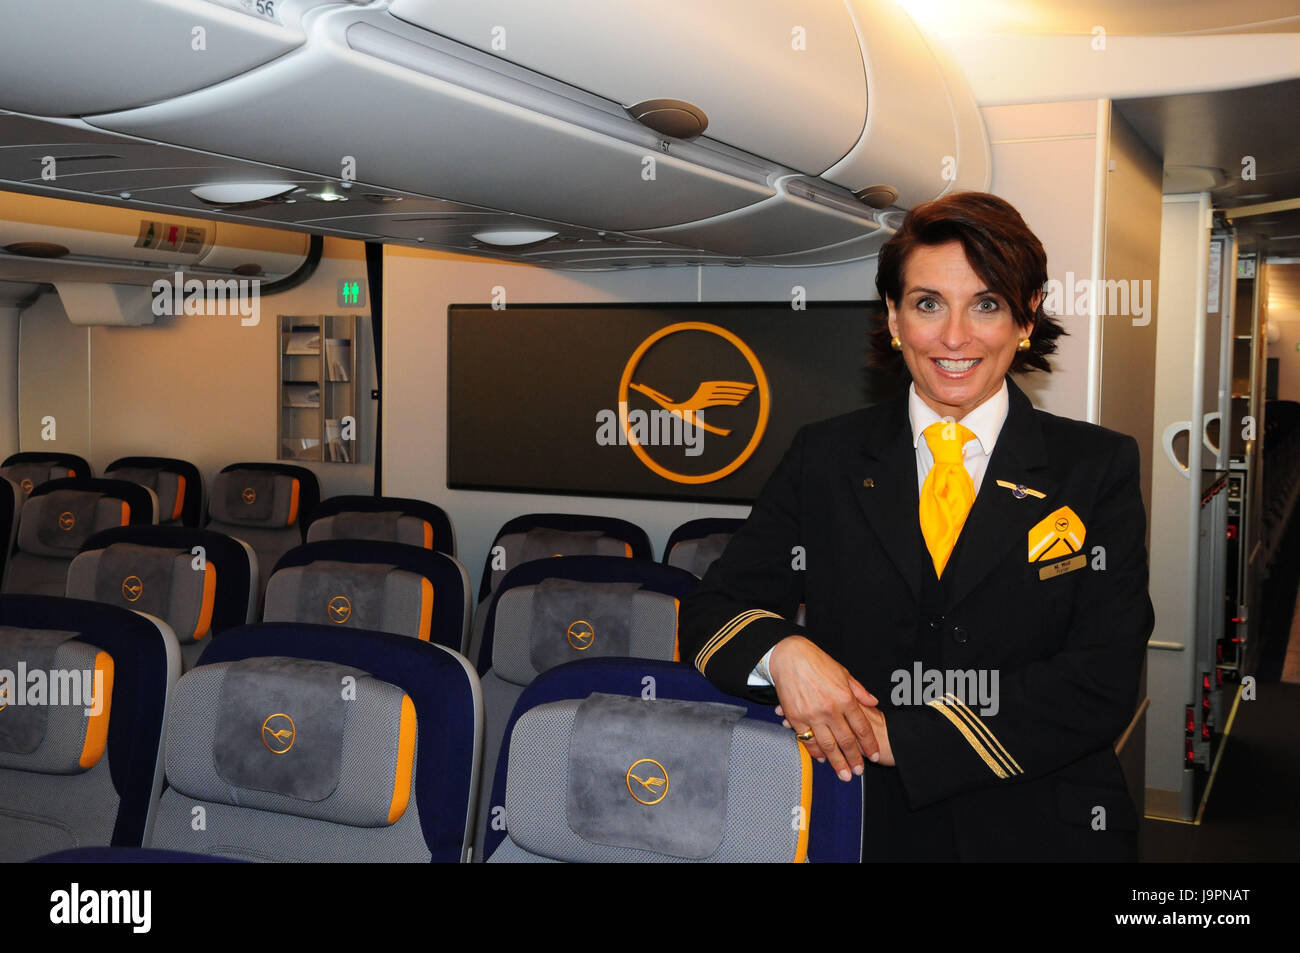 airbus seats stockfotos airbus seats bilder seite 3 alamy. Black Bedroom Furniture Sets. Home Design Ideas